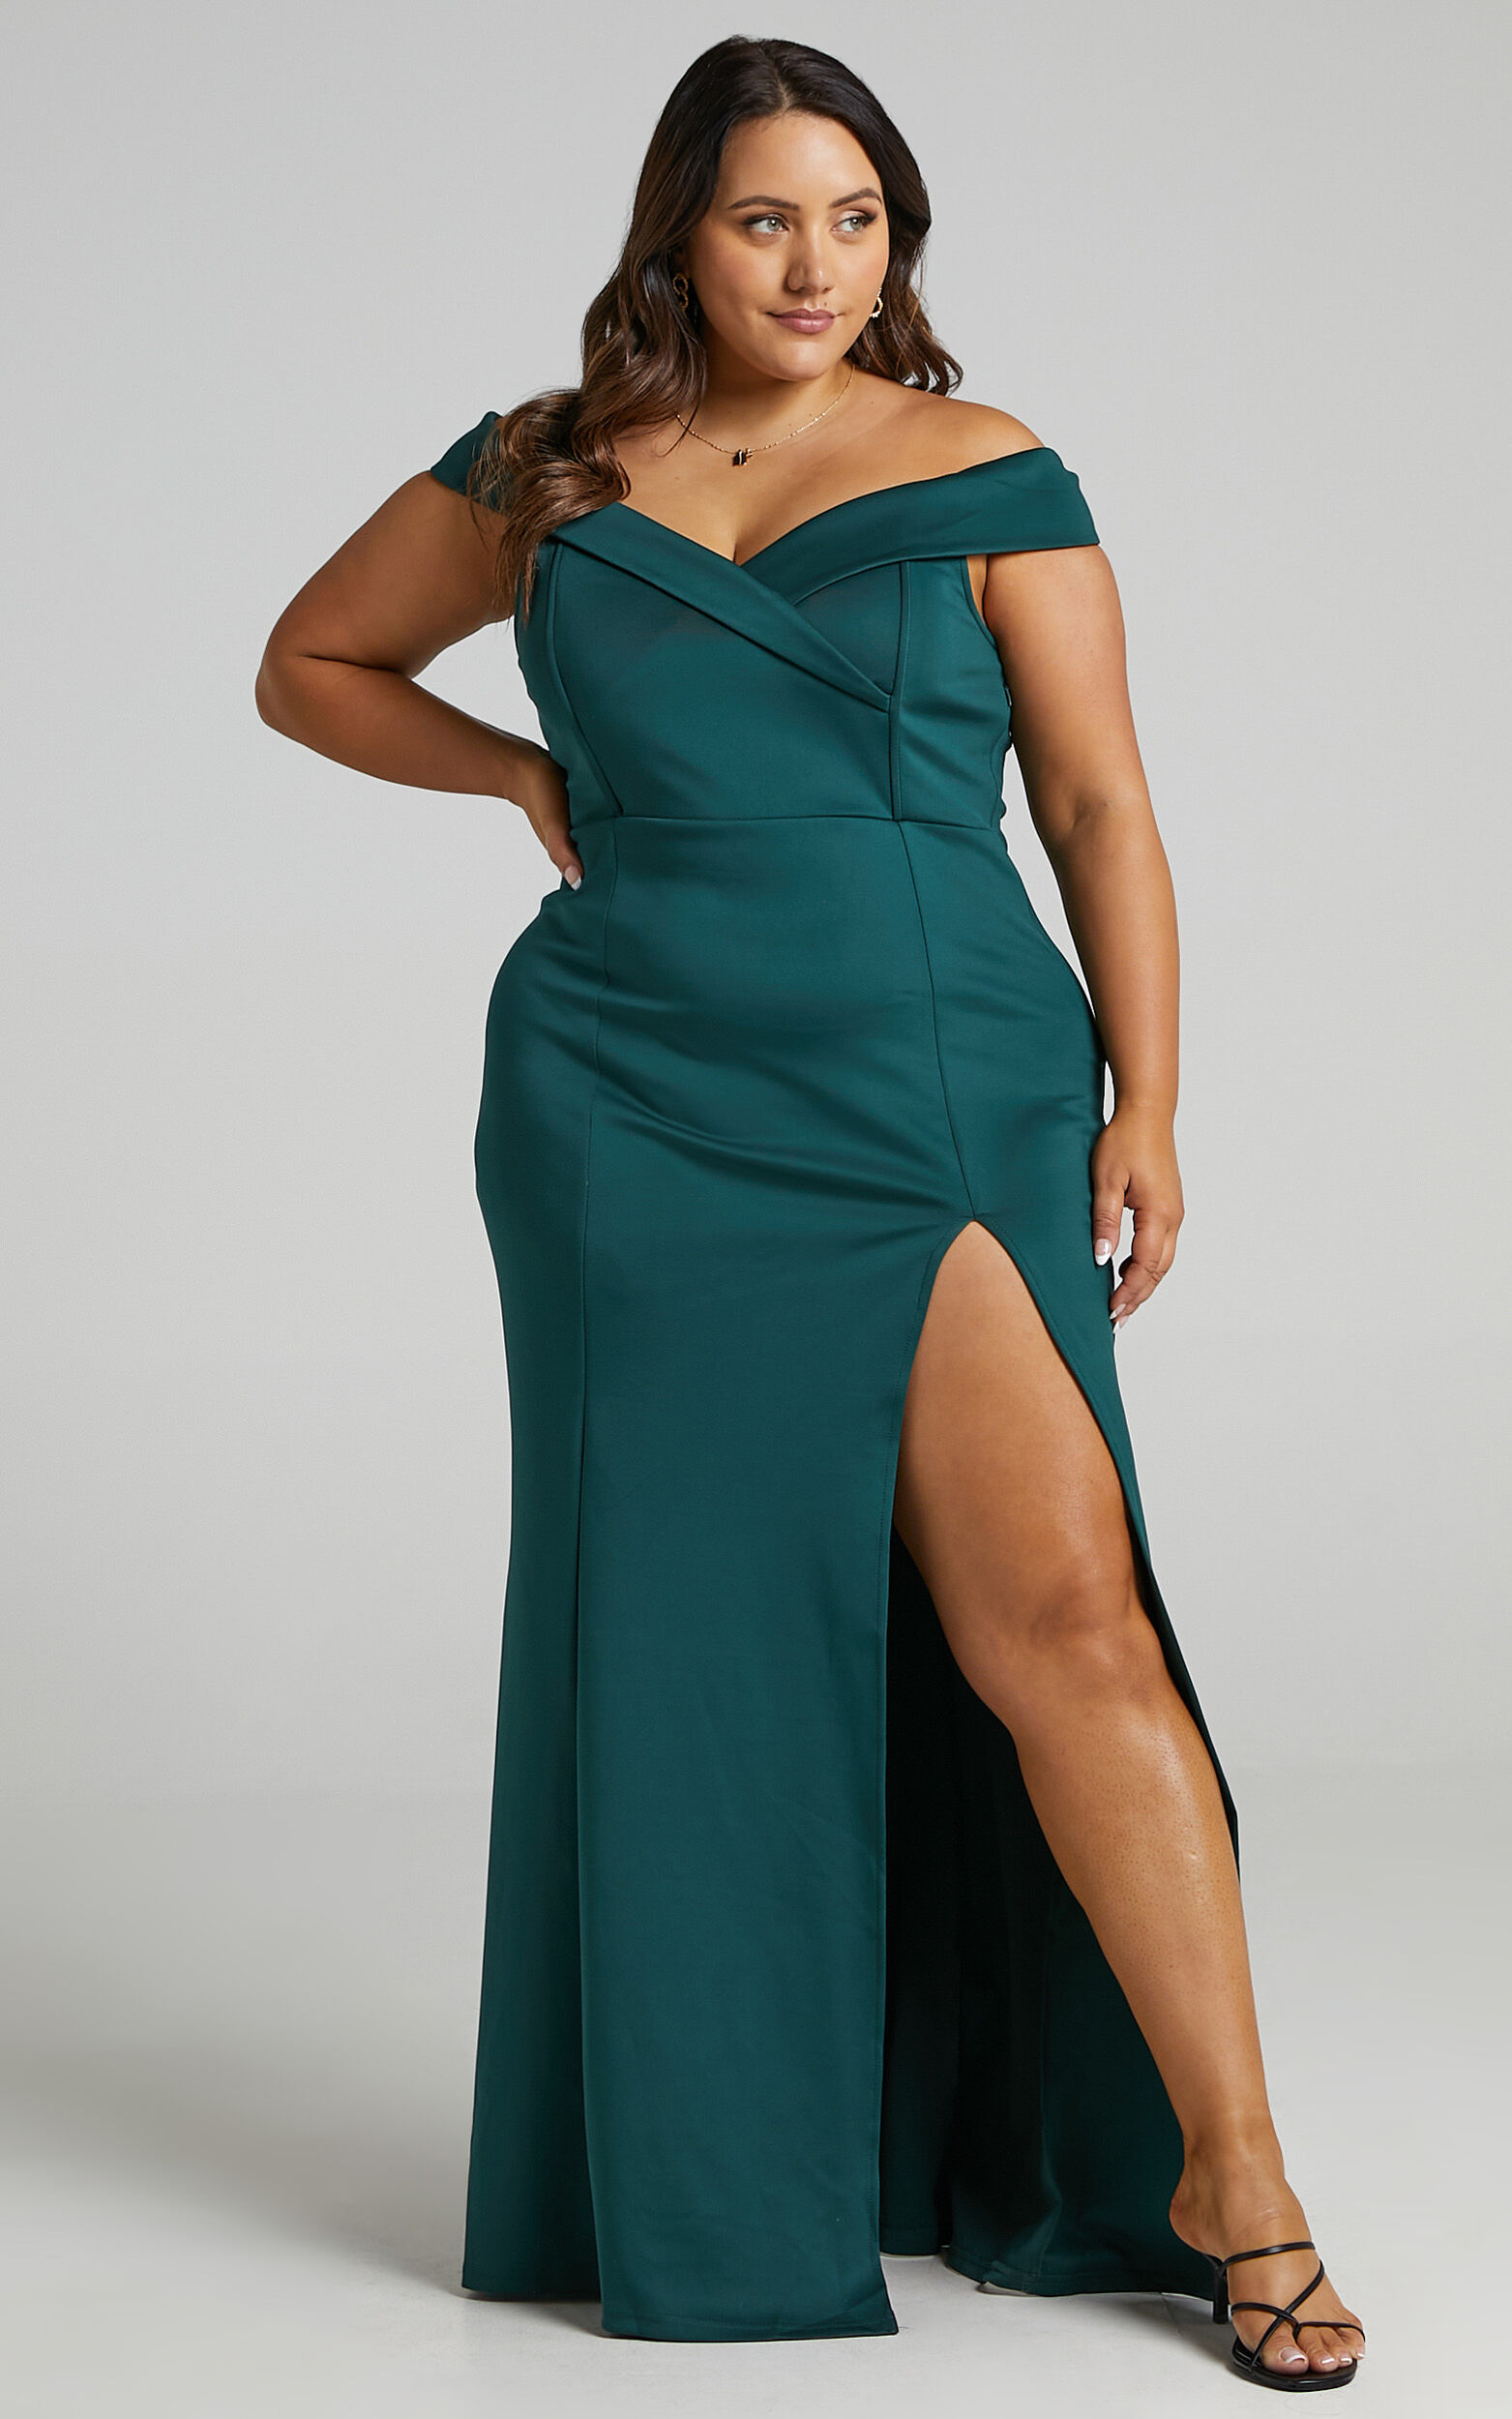 One For The Money Dress in Emerald - 20, GRN2, super-hi-res image number null